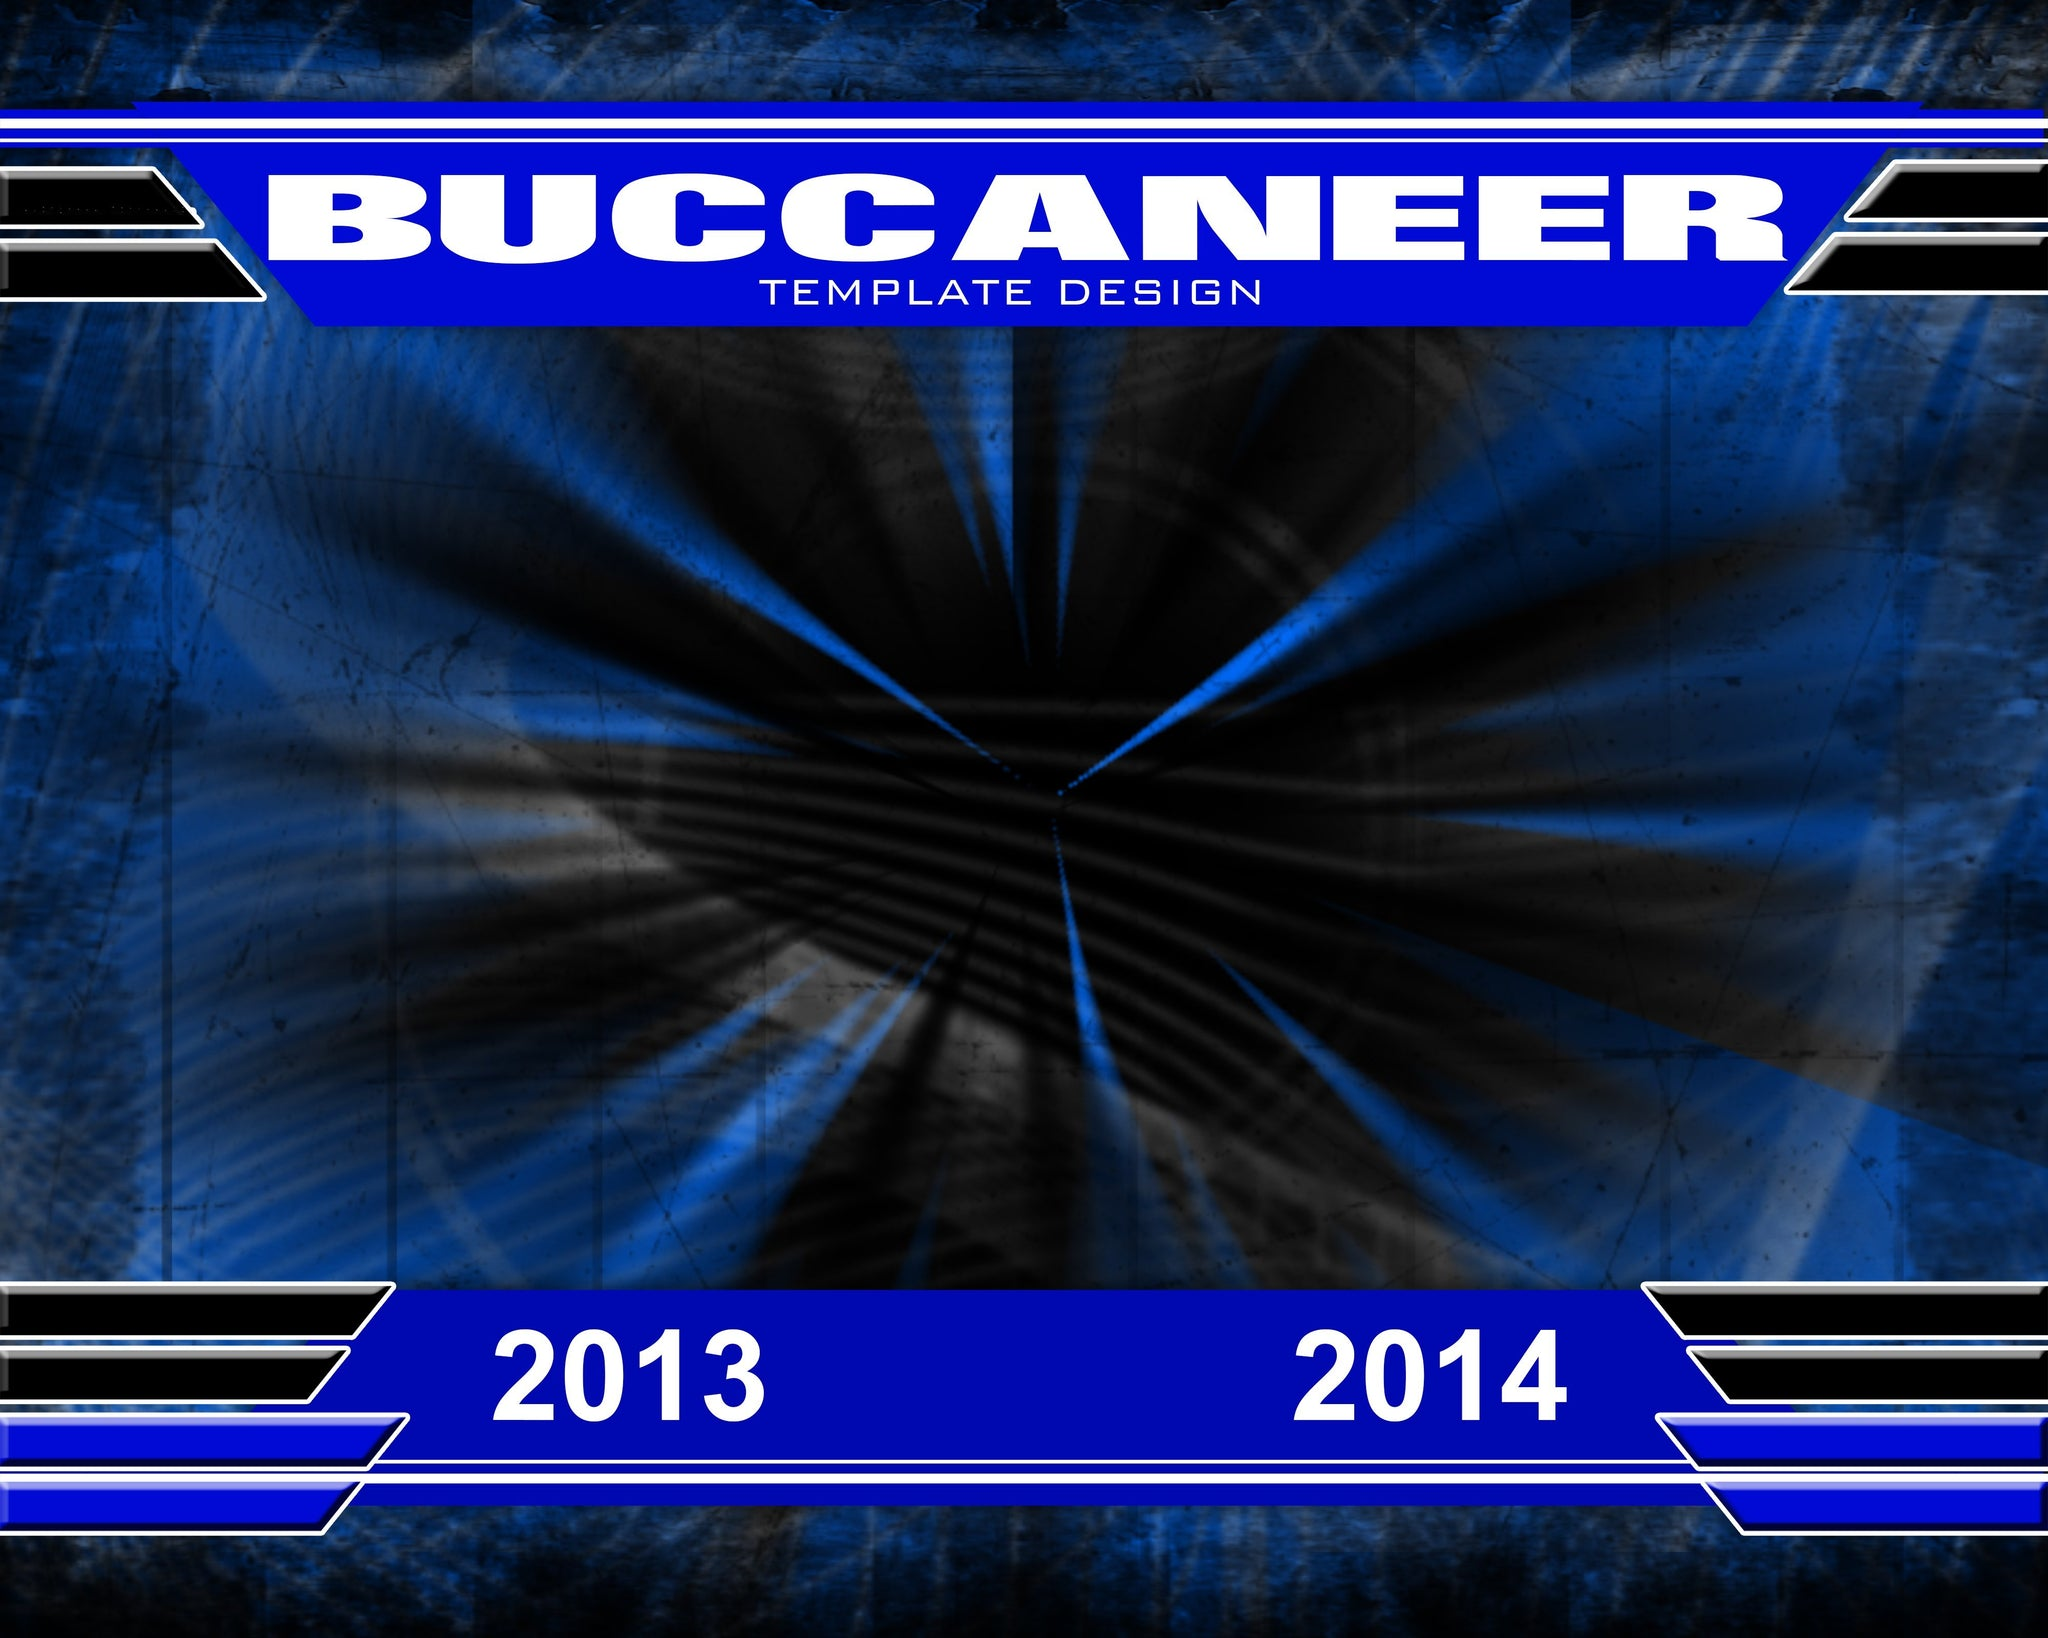 Buccaneer v.1 - Xtreme Team-Photoshop Template - Photo Solutions